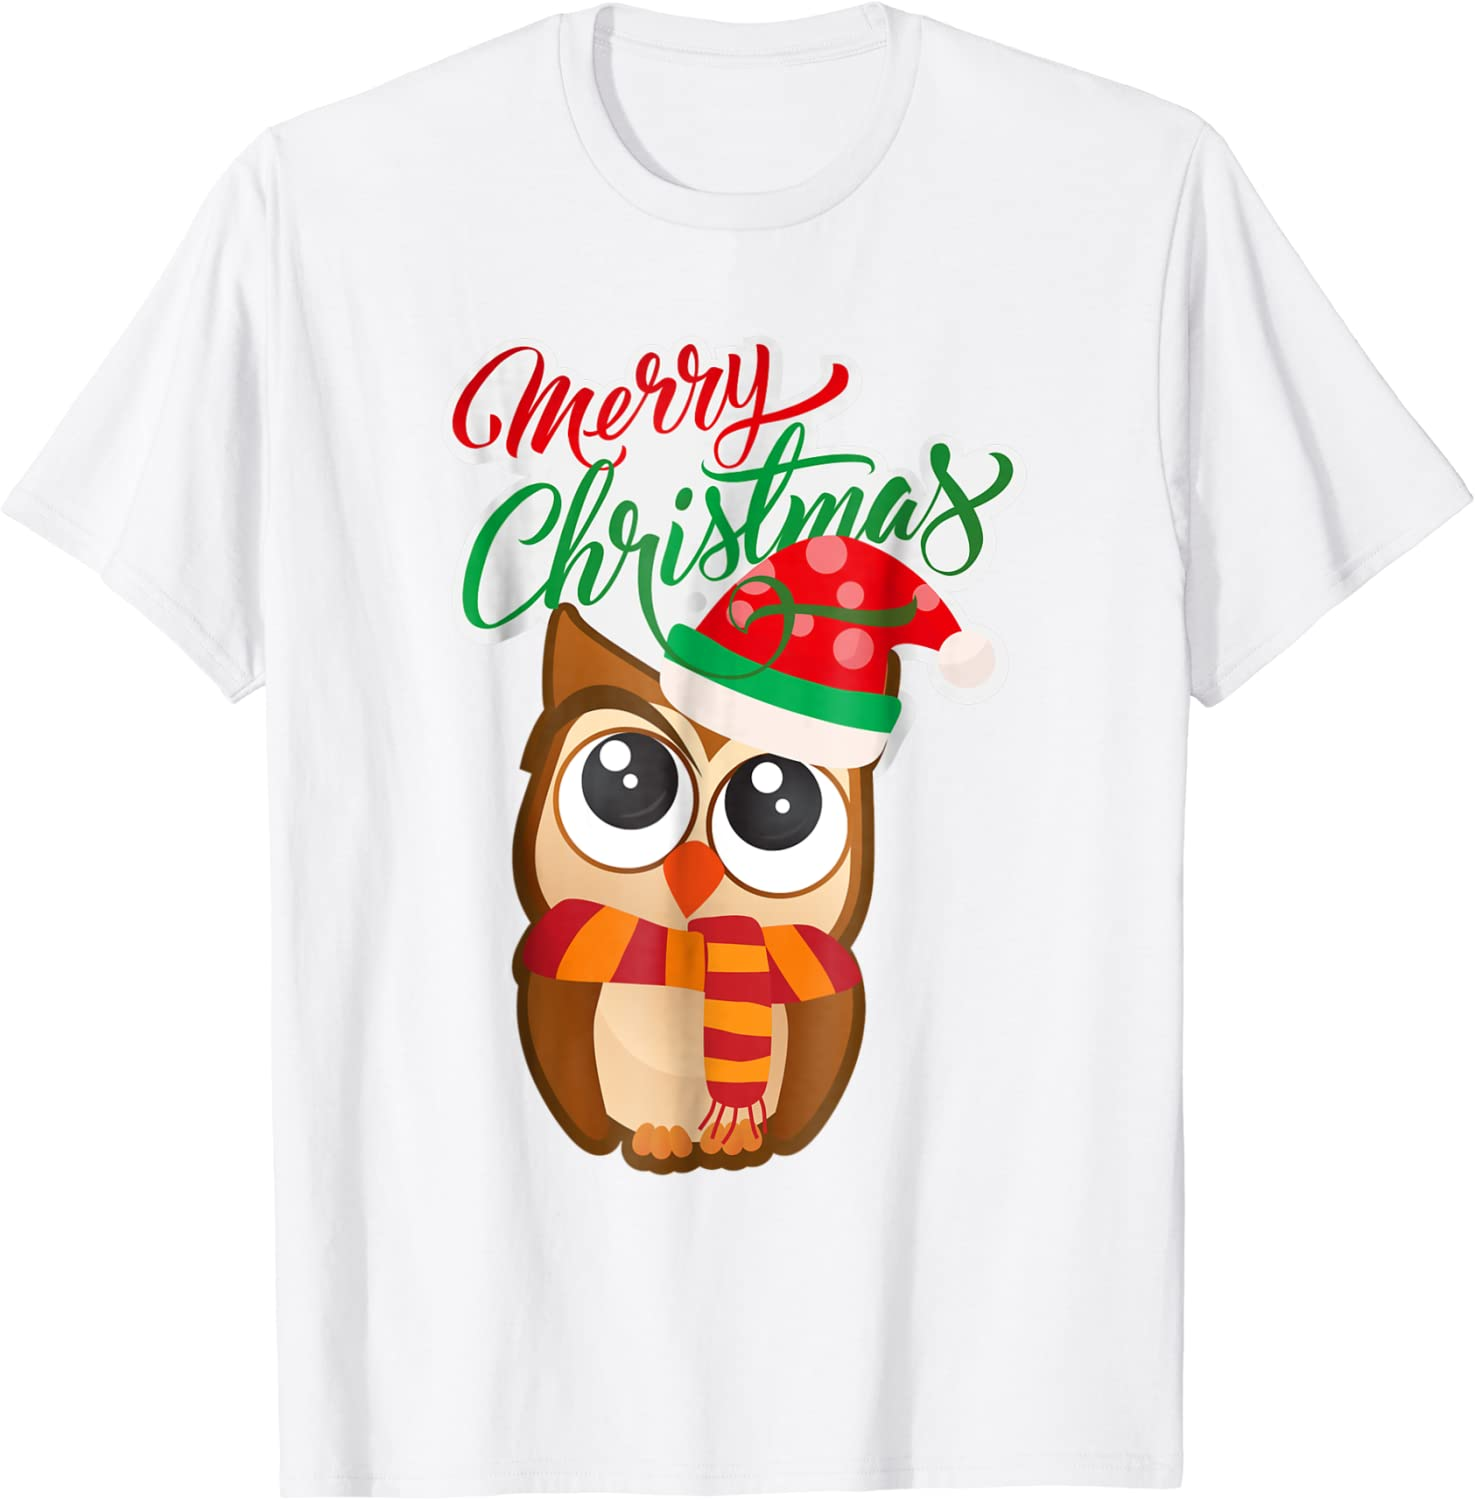 Christmas Owl Unisex Baby Christmas Long Sleeve Shirt Cute Addition to Baby/'s First Christmas 4 Preemie and Newborn Sizes up to 0-3 Months